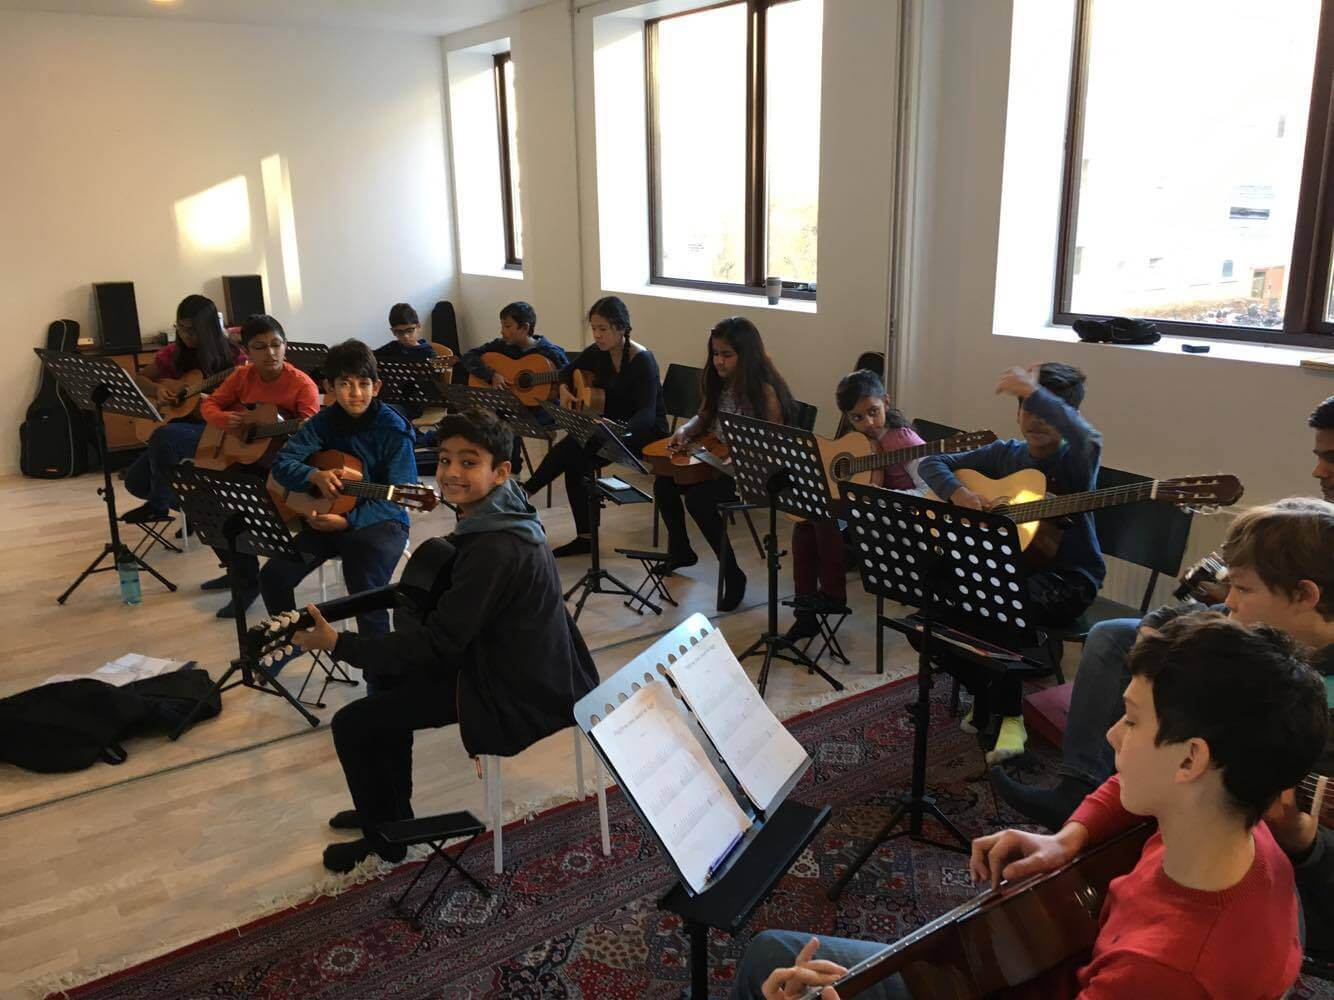 Orchestra project rehearsals 2